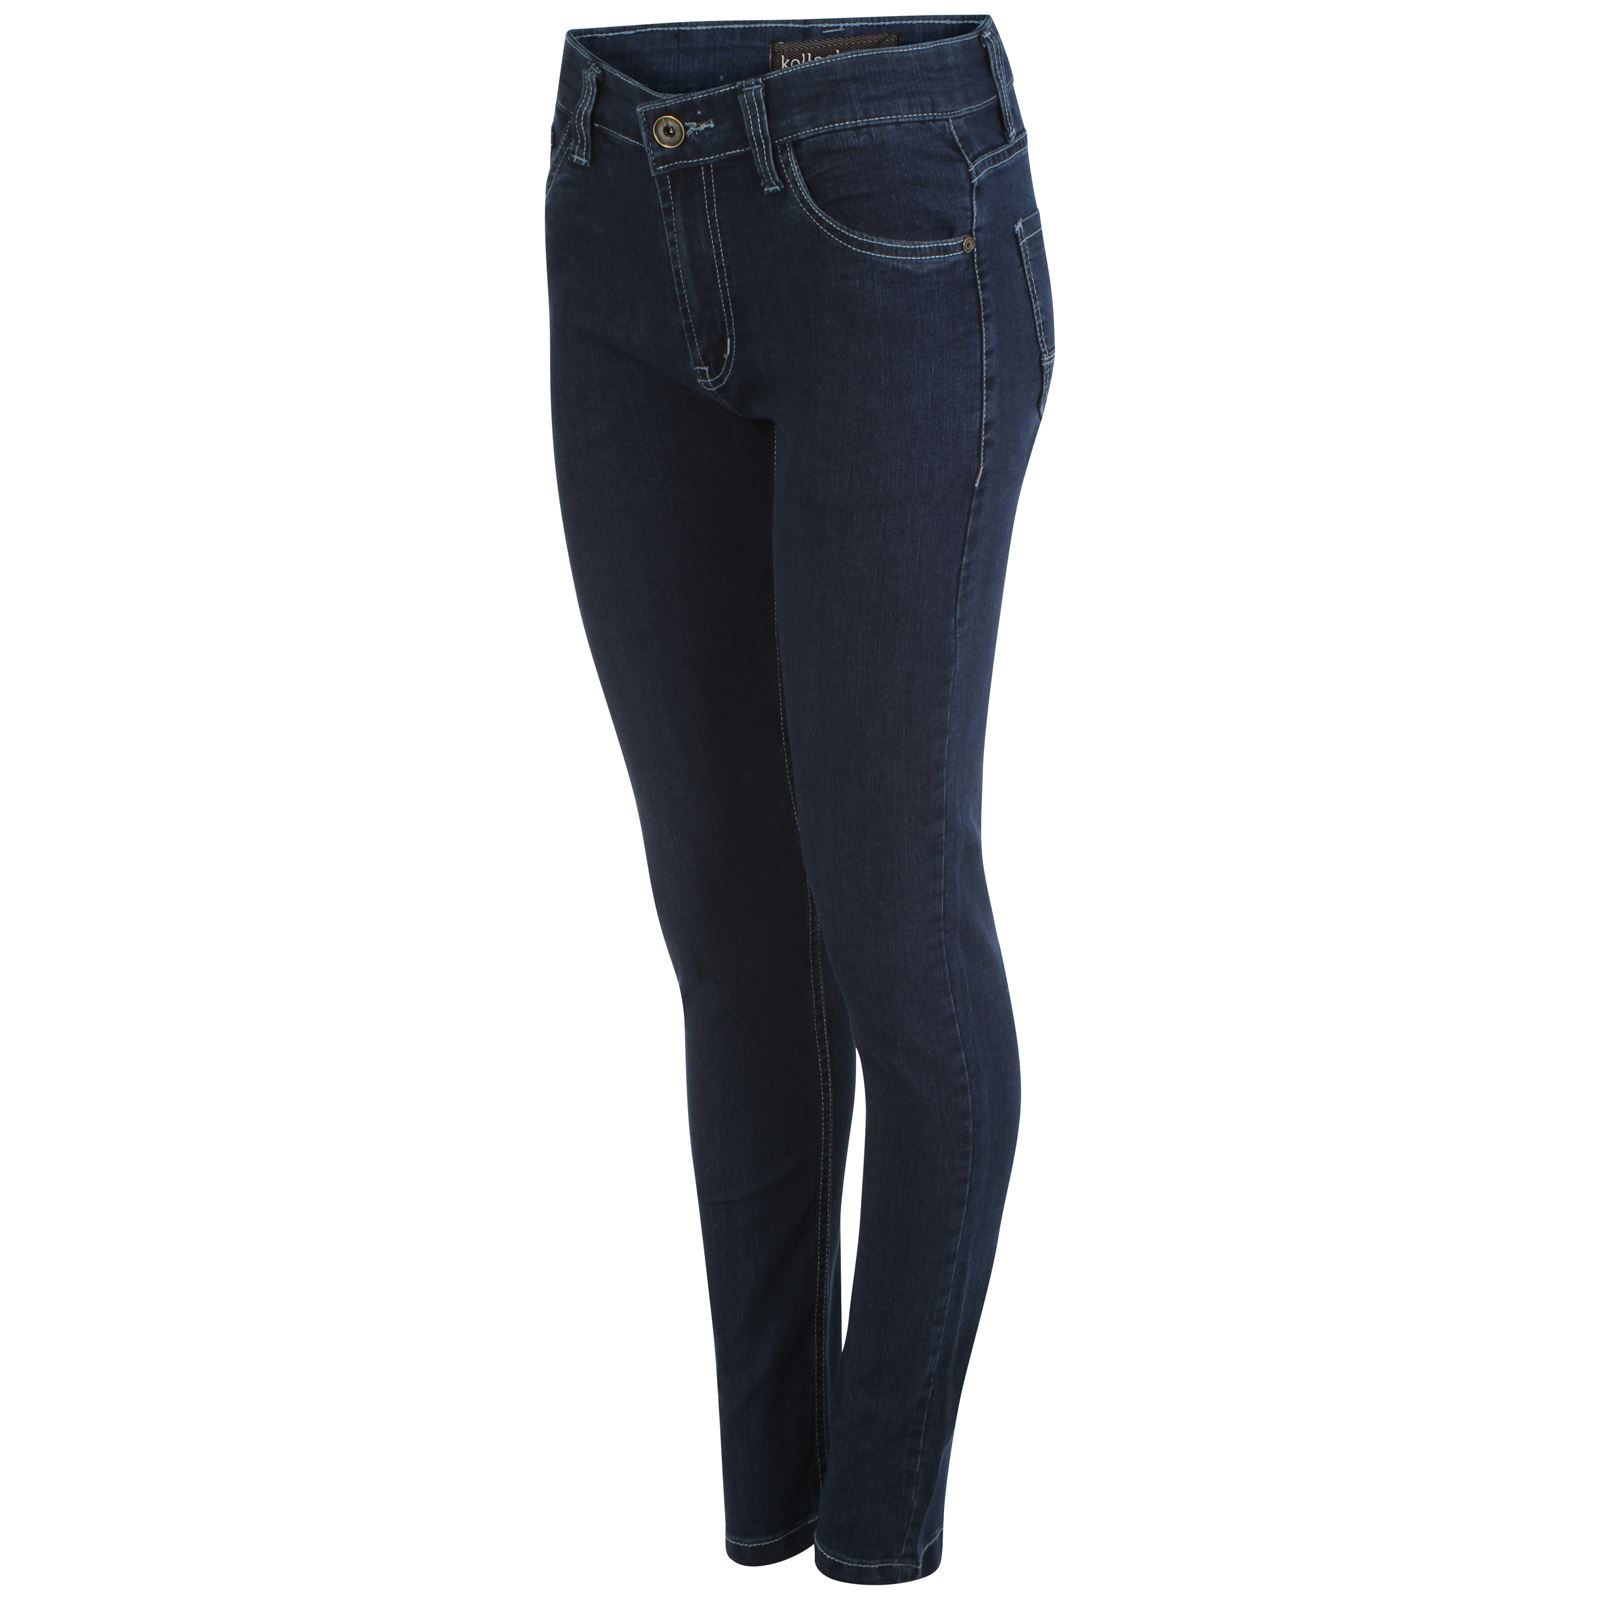 Women's Skinny and Slim Leg Jeans | Silver JeansFree Shipping, All Orders· Extended Sizes Available· Online Fit Guide.